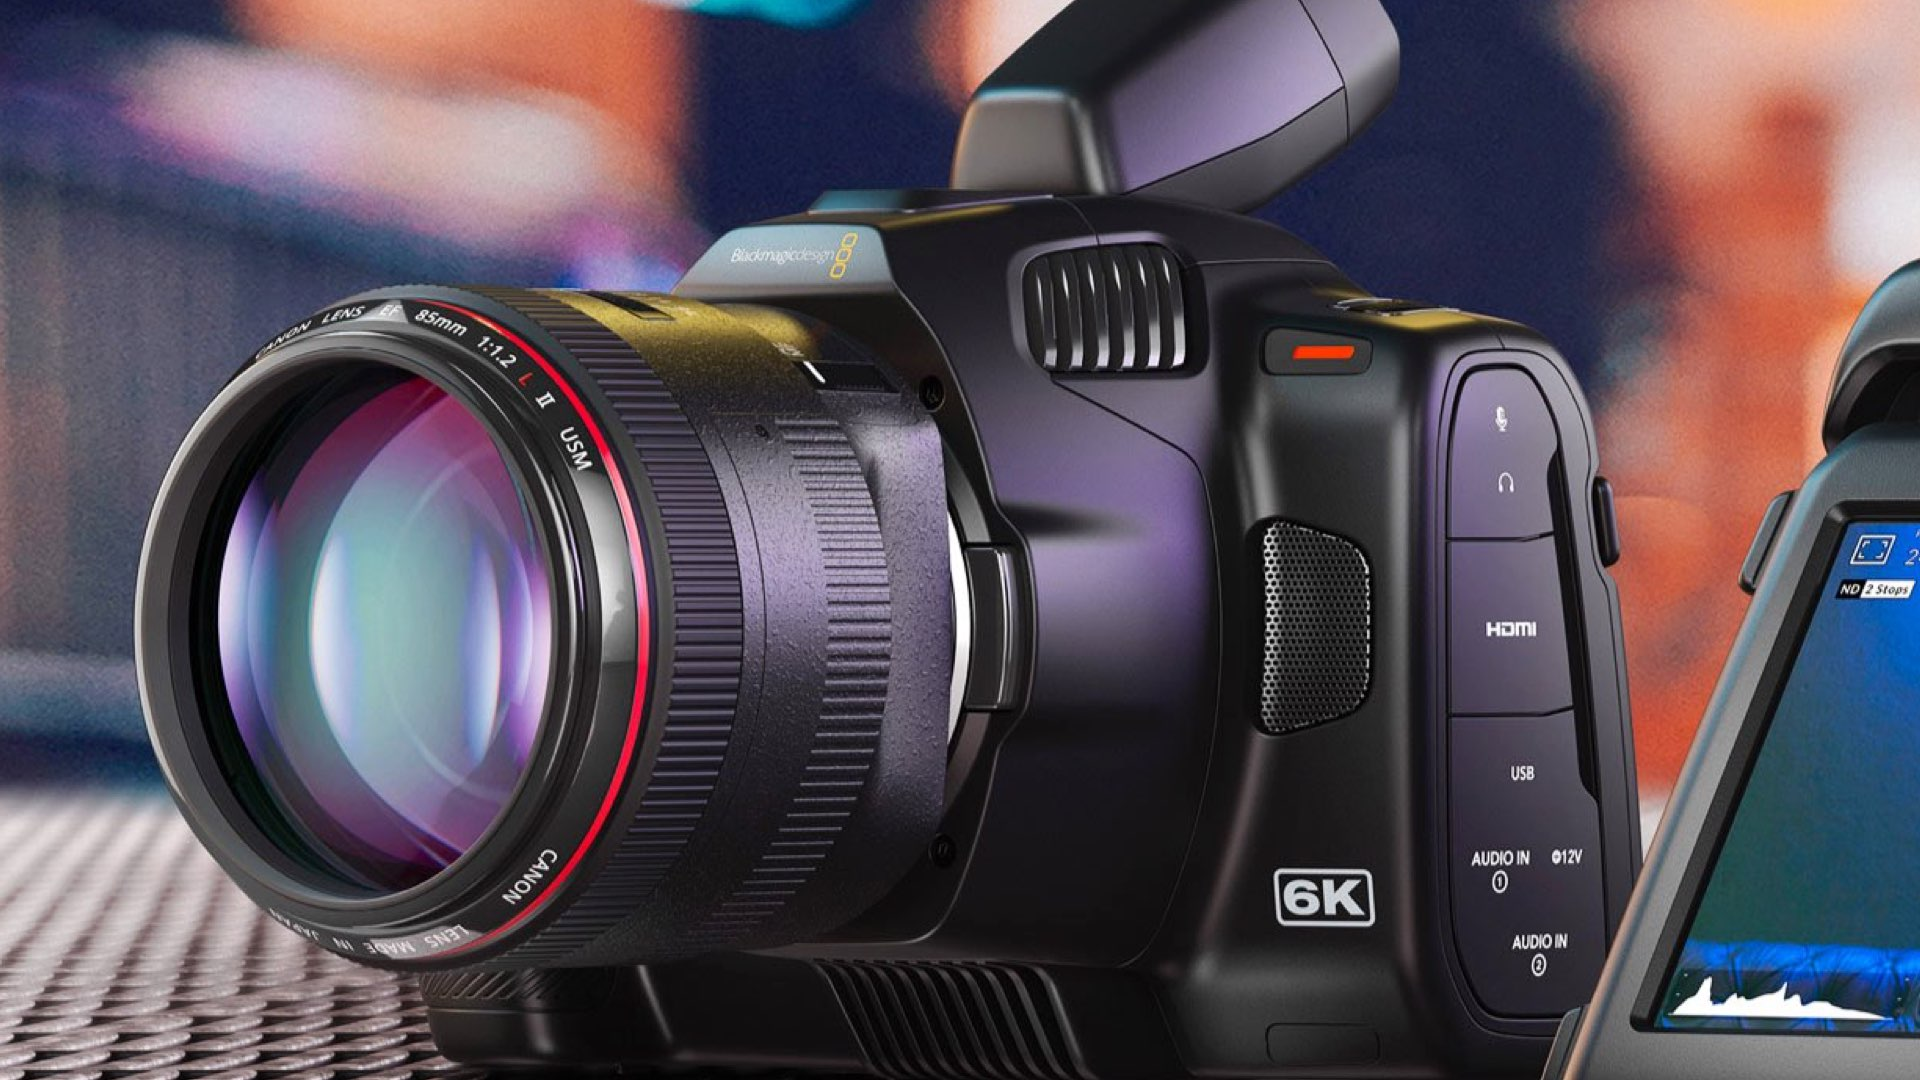 Blackmagic Pocket Cinema Camera 6K Pro cechy kamery